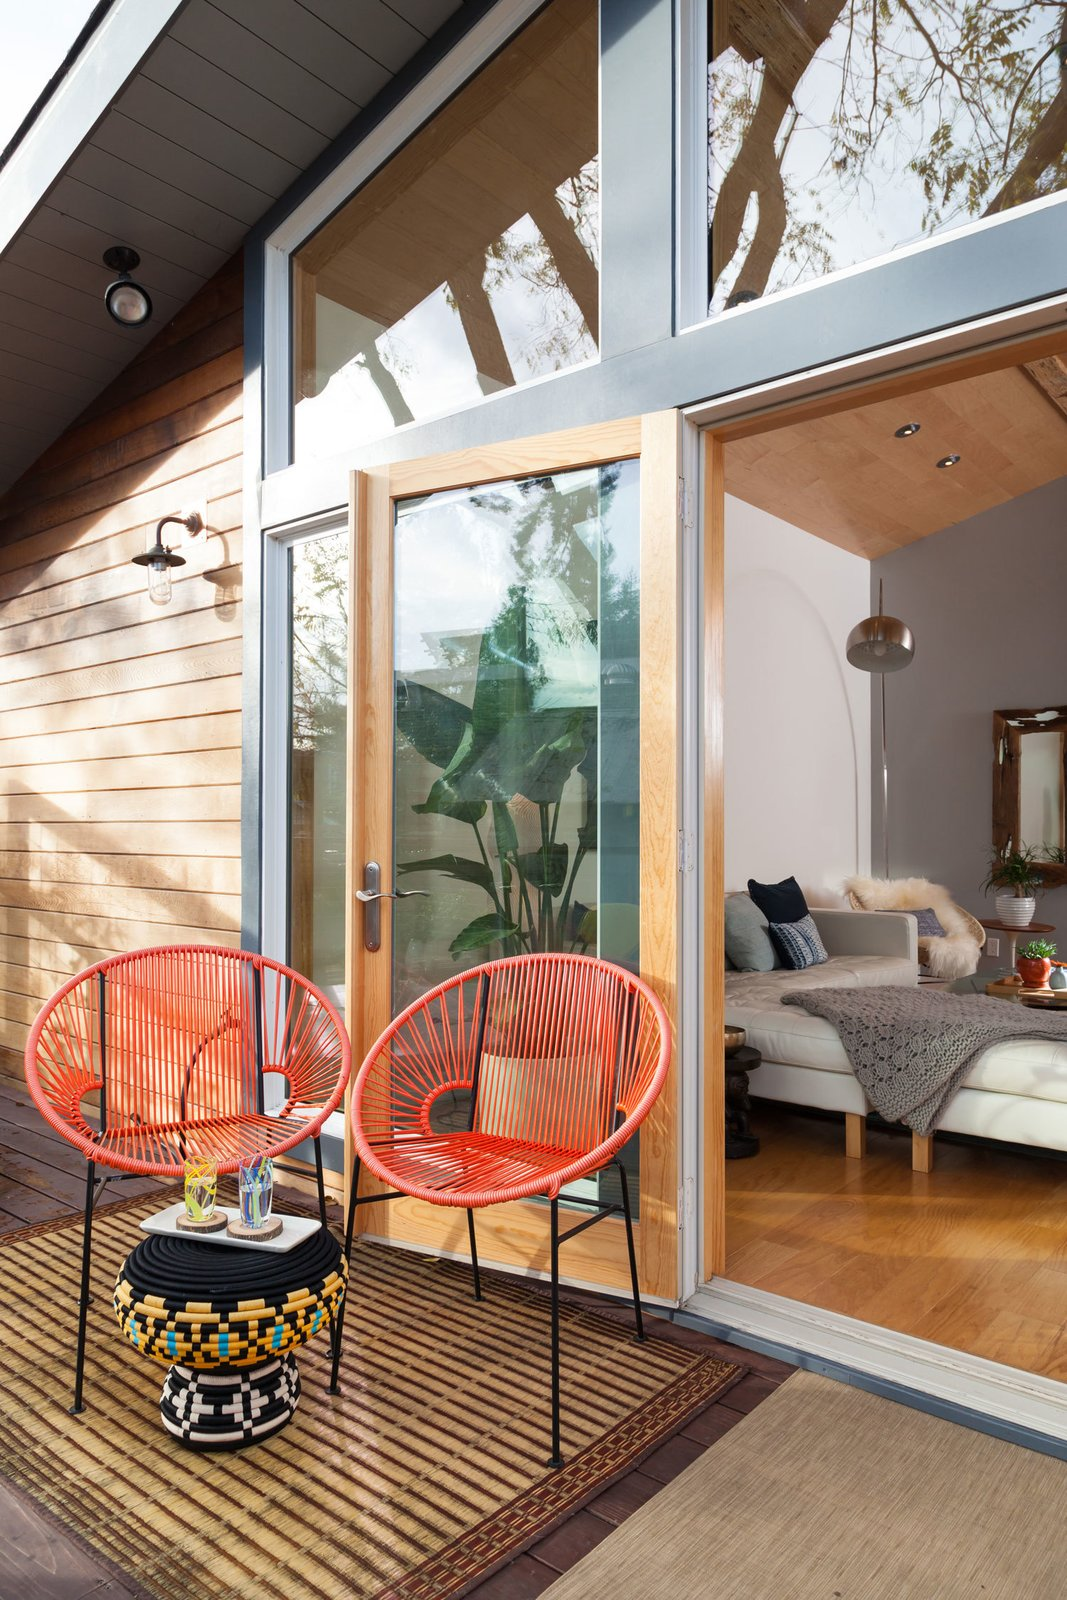 Outdoor, Small Patio, Porch, Deck, Wood Patio, Porch, Deck, and Decking Patio, Porch, Deck The space is designed for easy indoor-outdoor access.  Sunny Berkeley Bungalow Renovation by Allie Weiss